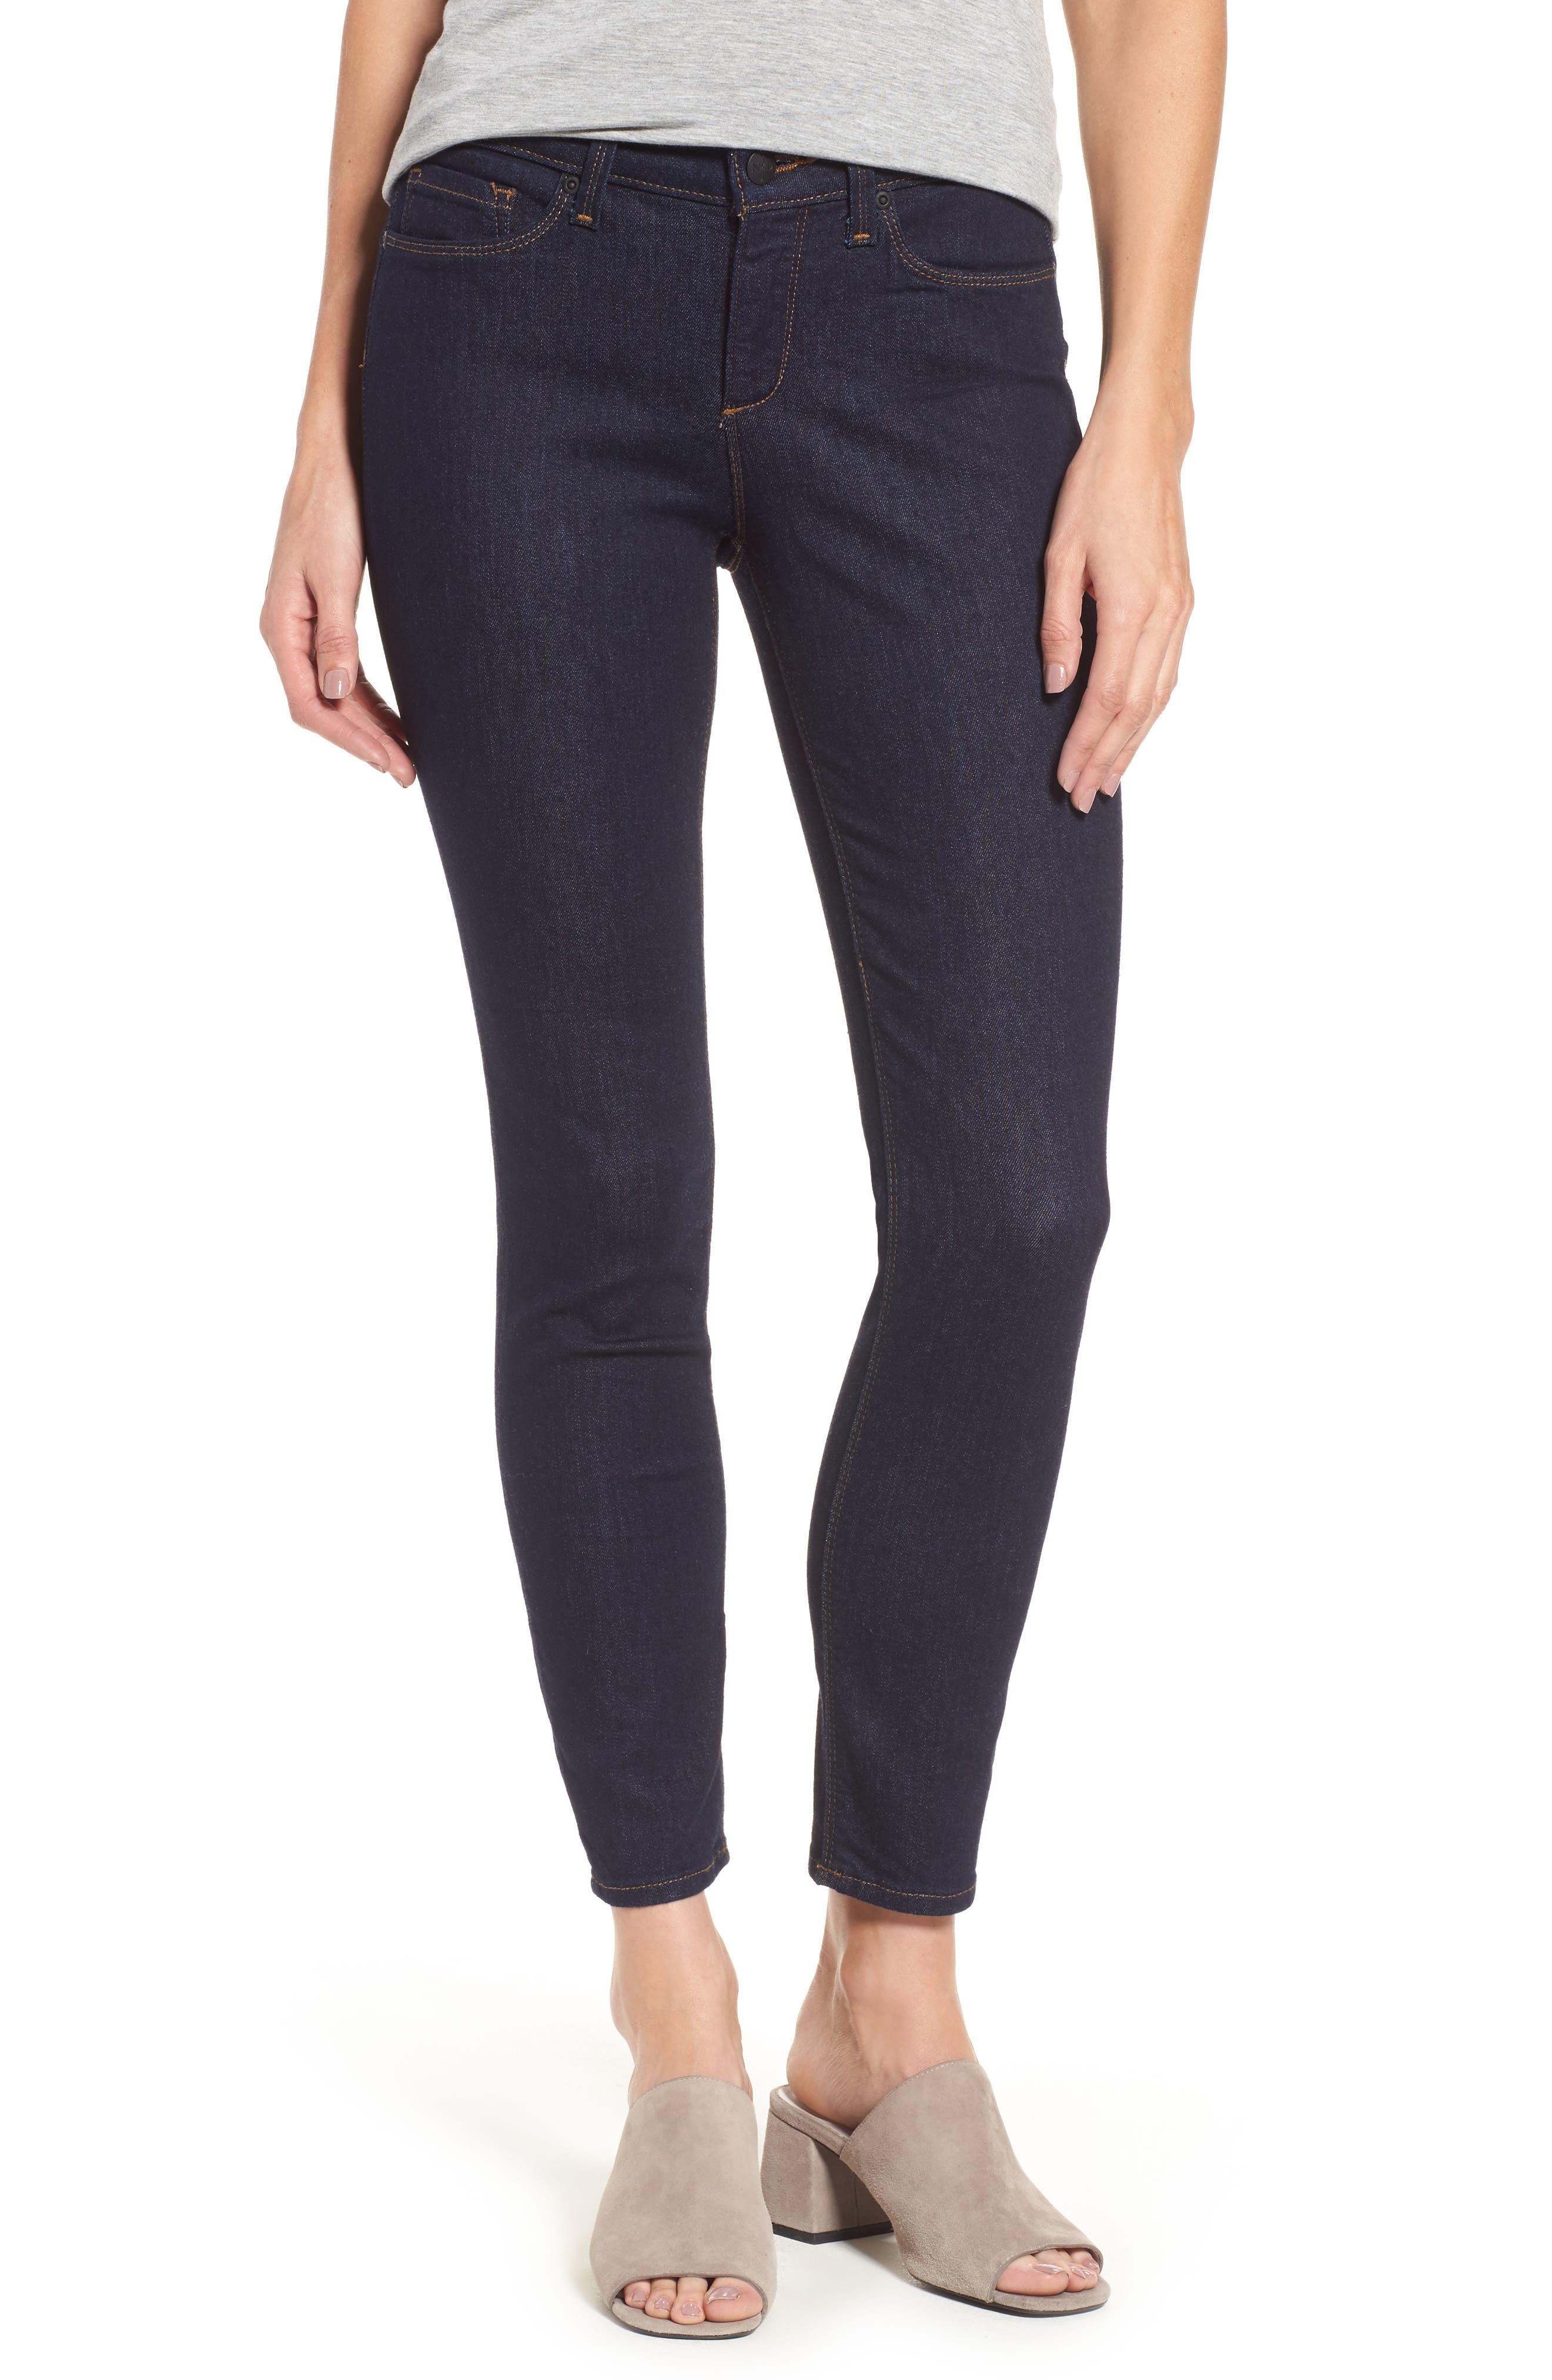 Alternate Image 1 Selected - NYDJ Dylan Stretch Skinny Ankle Jeans